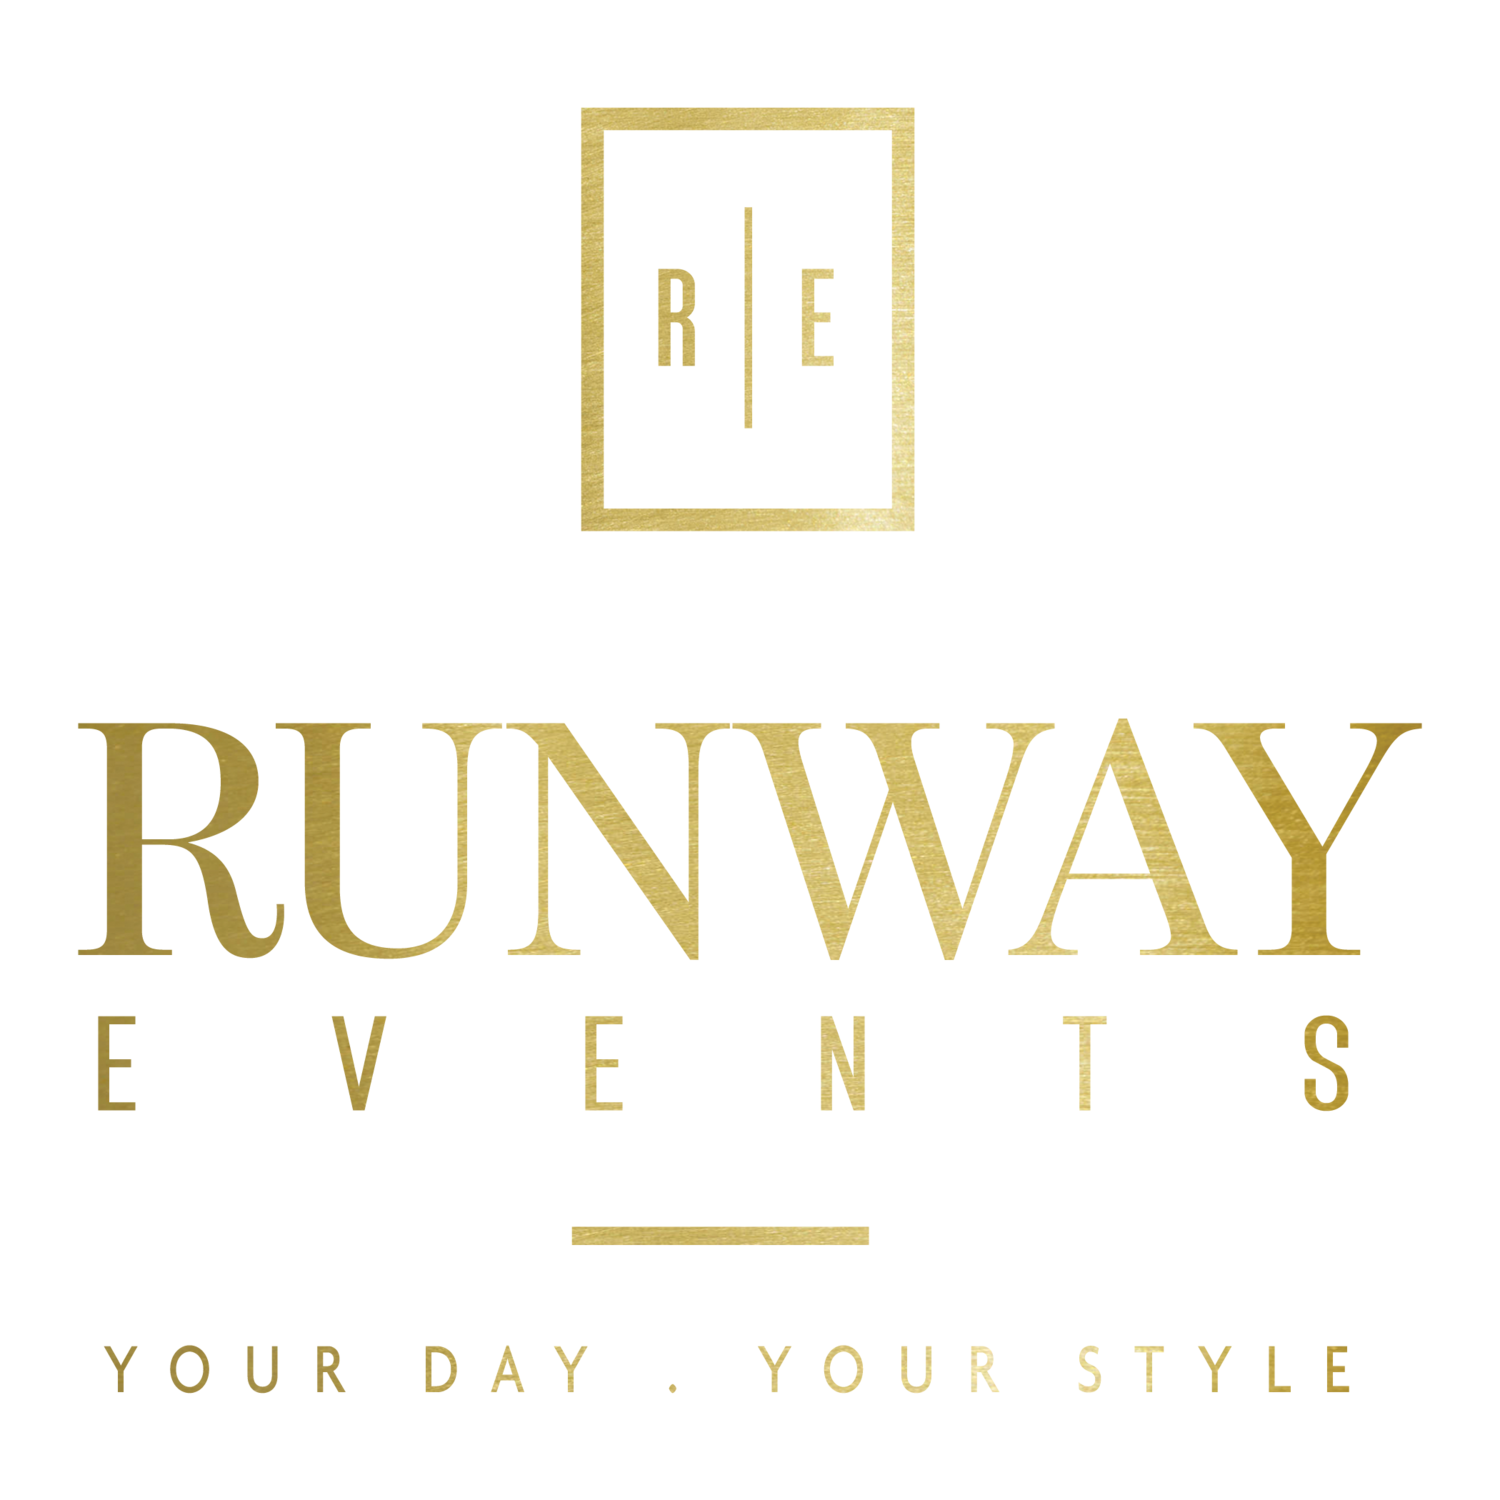 runway events wedding planner orlando wedding planner tampa wedding planner new york